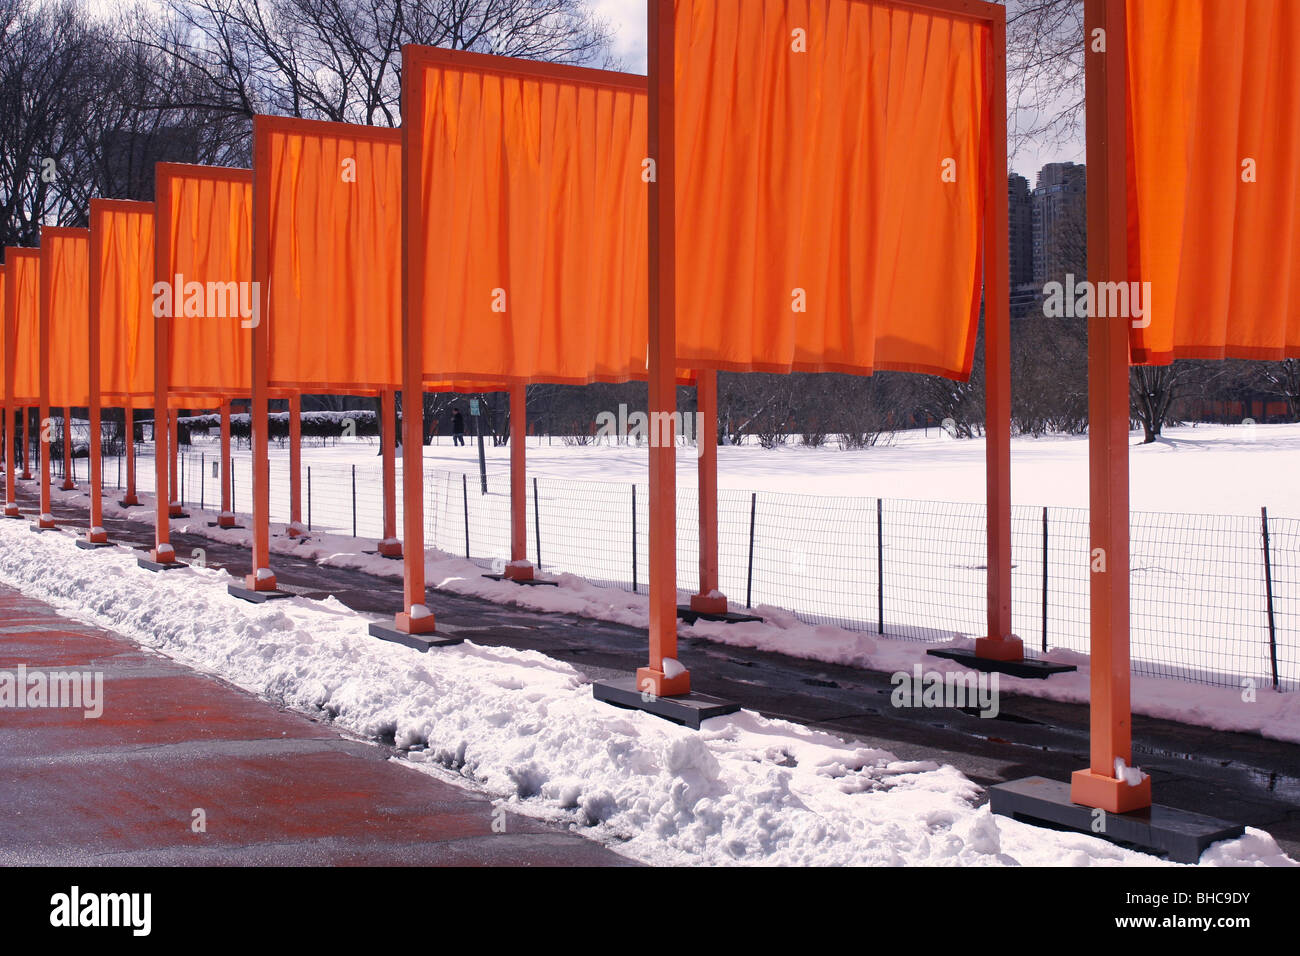 The Gates By Christo And Jeanne Claude Stock Photo Alamy